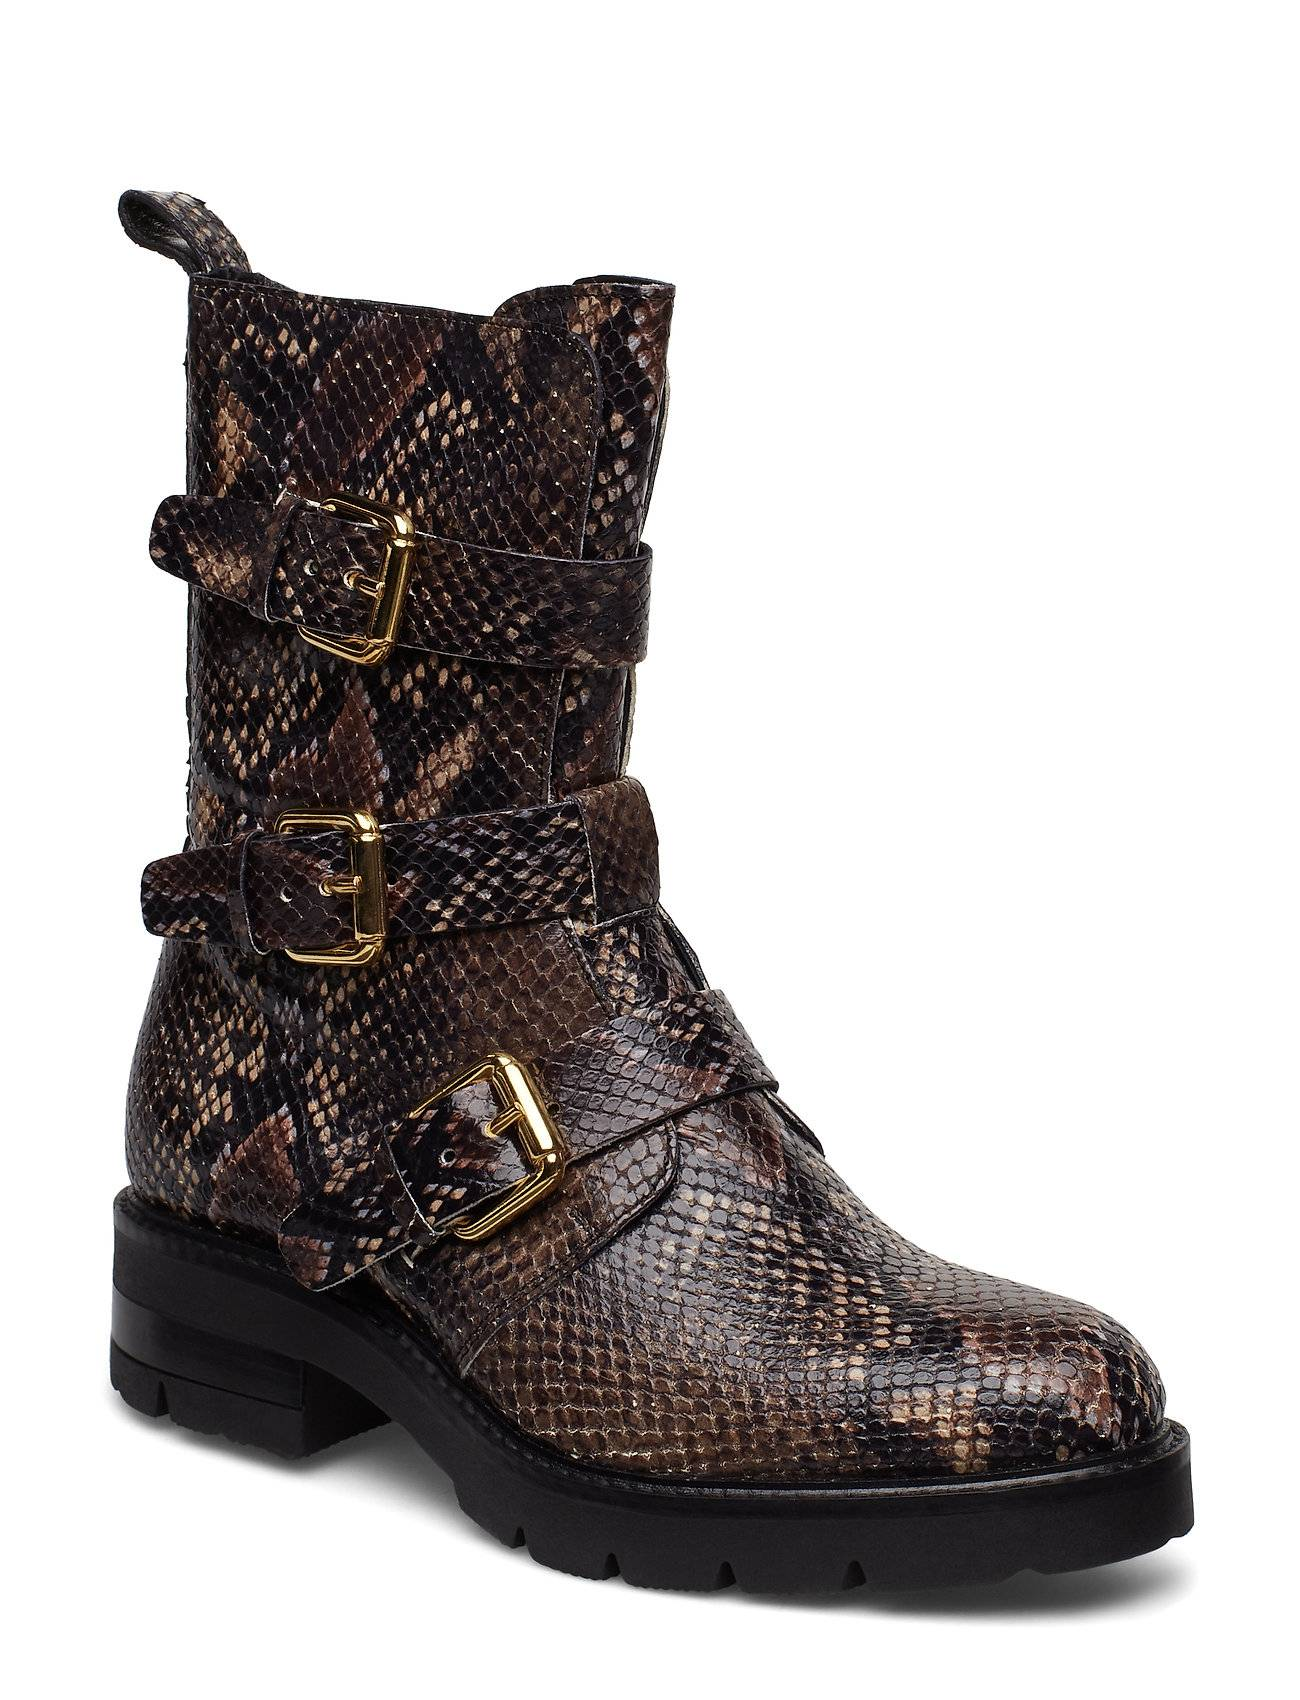 Apair Bikerboot Shoes Boots Ankle Boots Ankle Boots Flat Heel Ruskea Apair